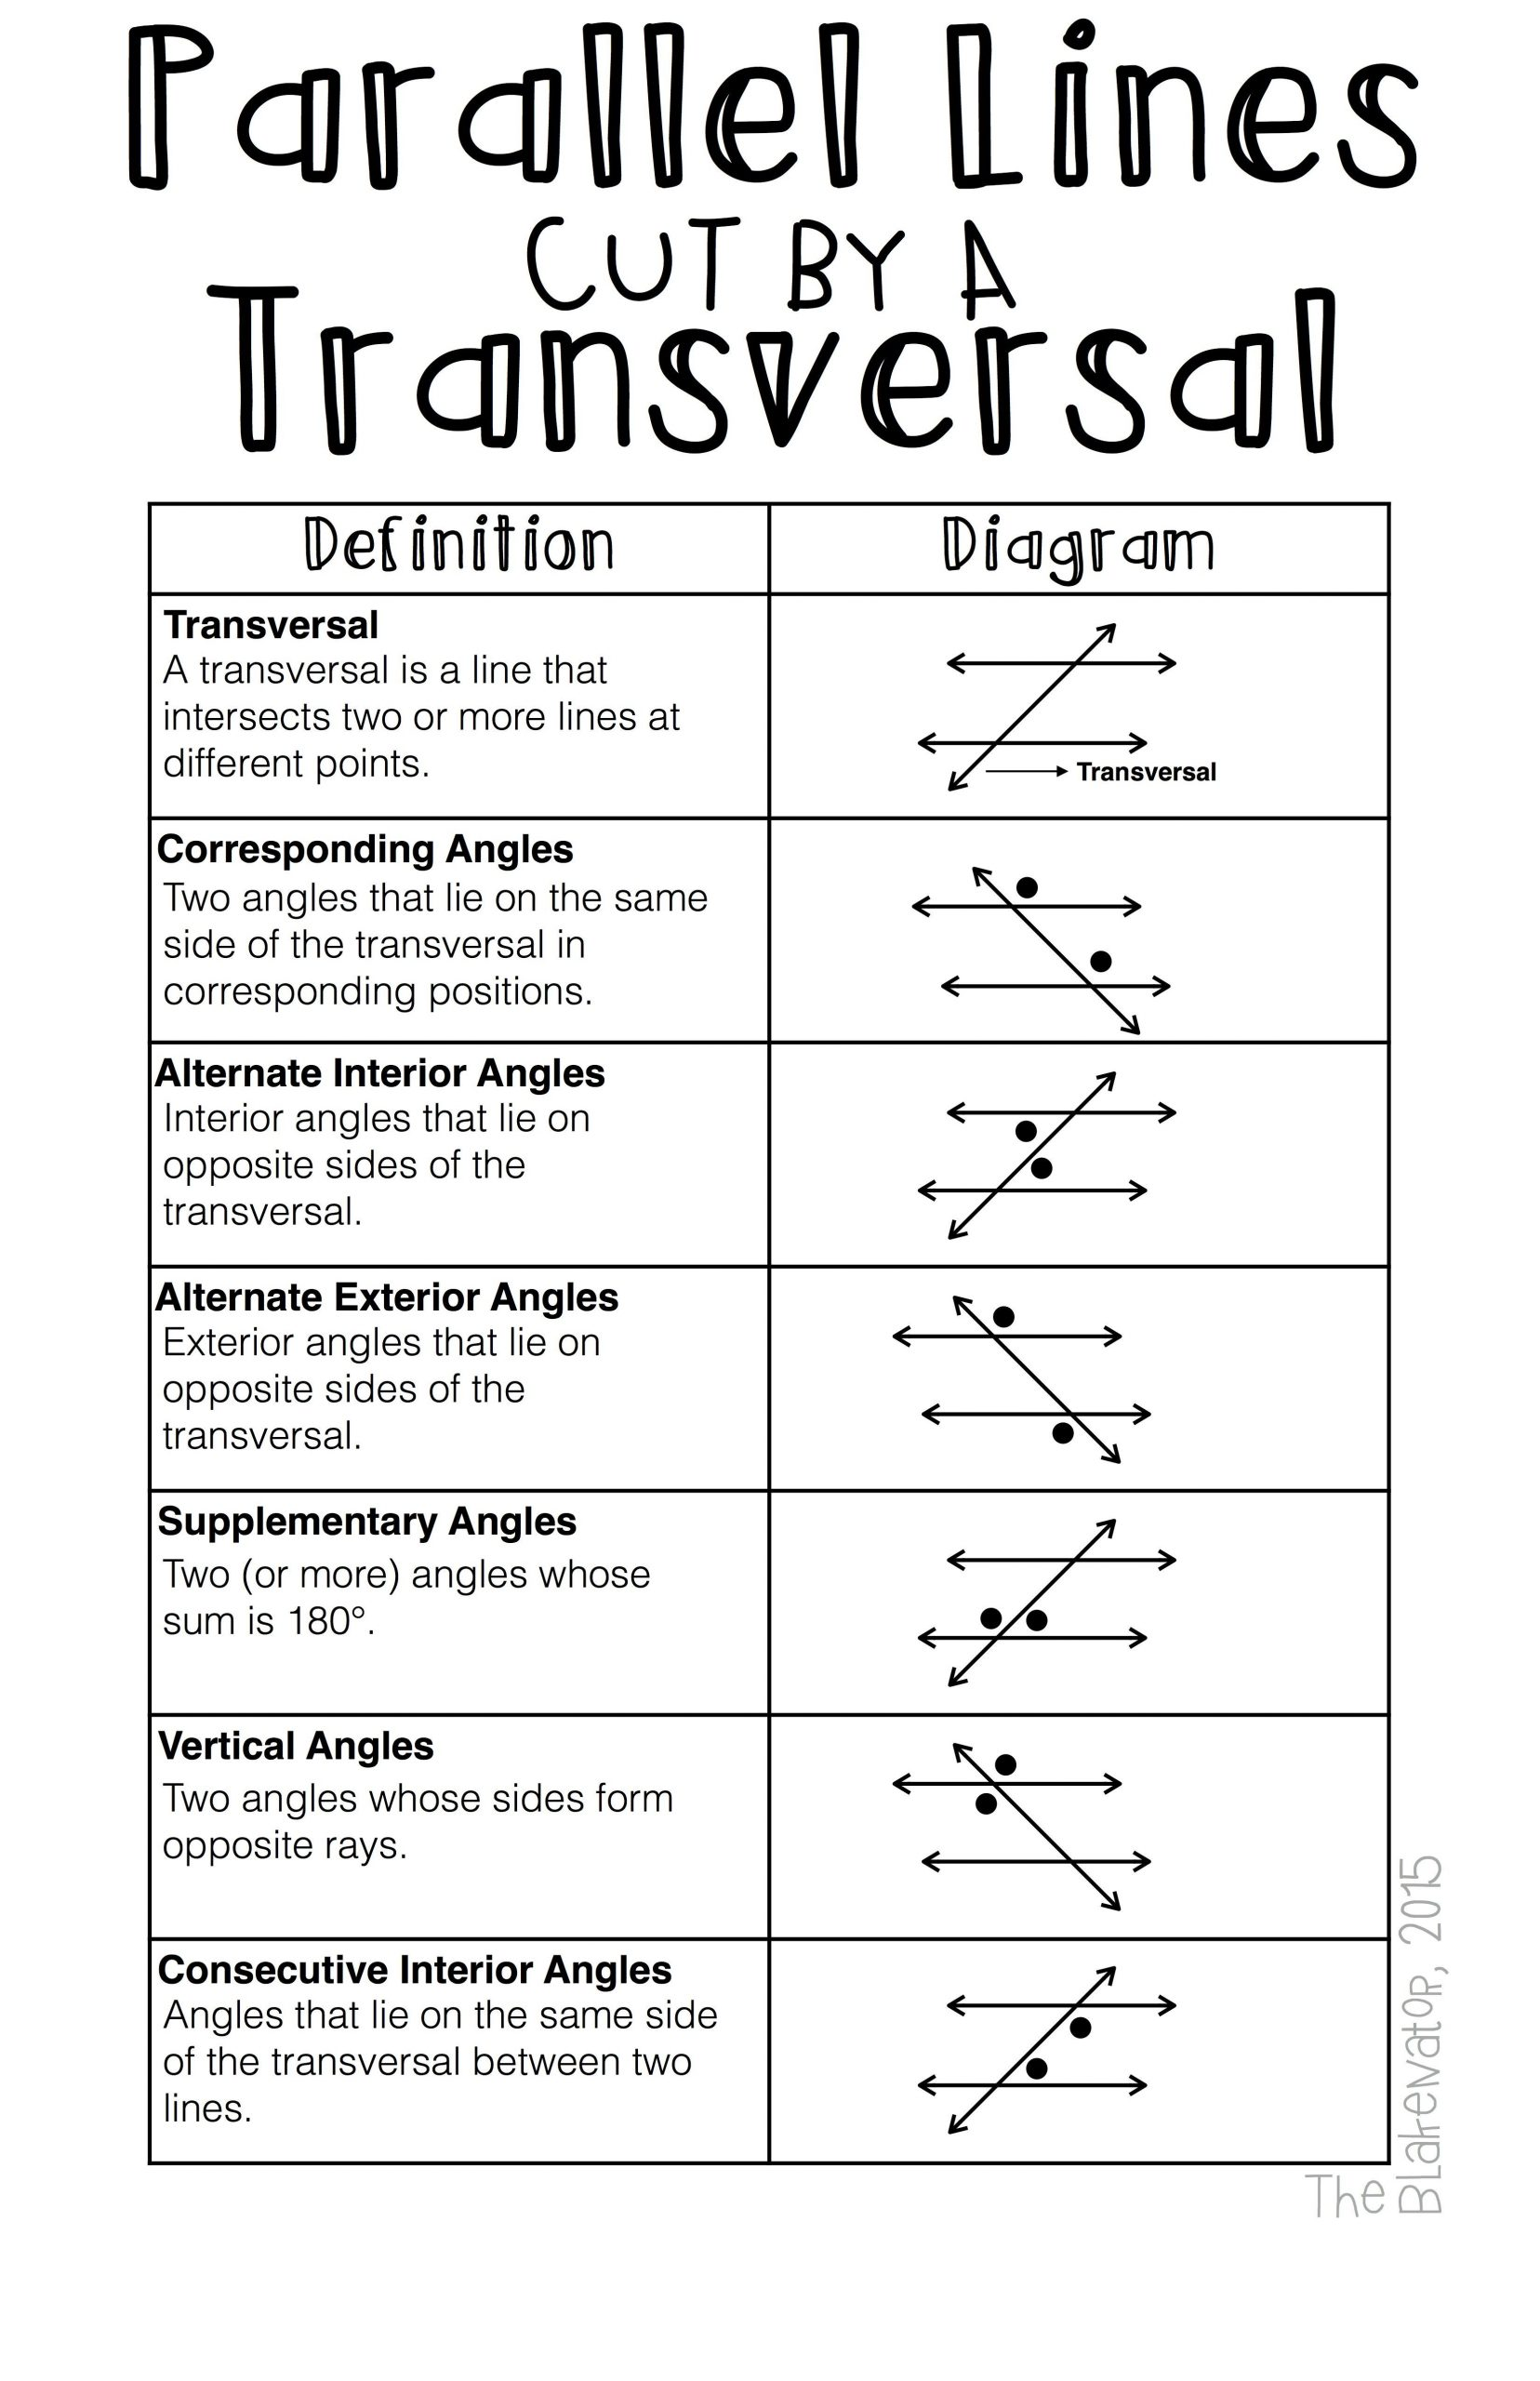 Vertical Angles Worksheet Pdf Pin On Education